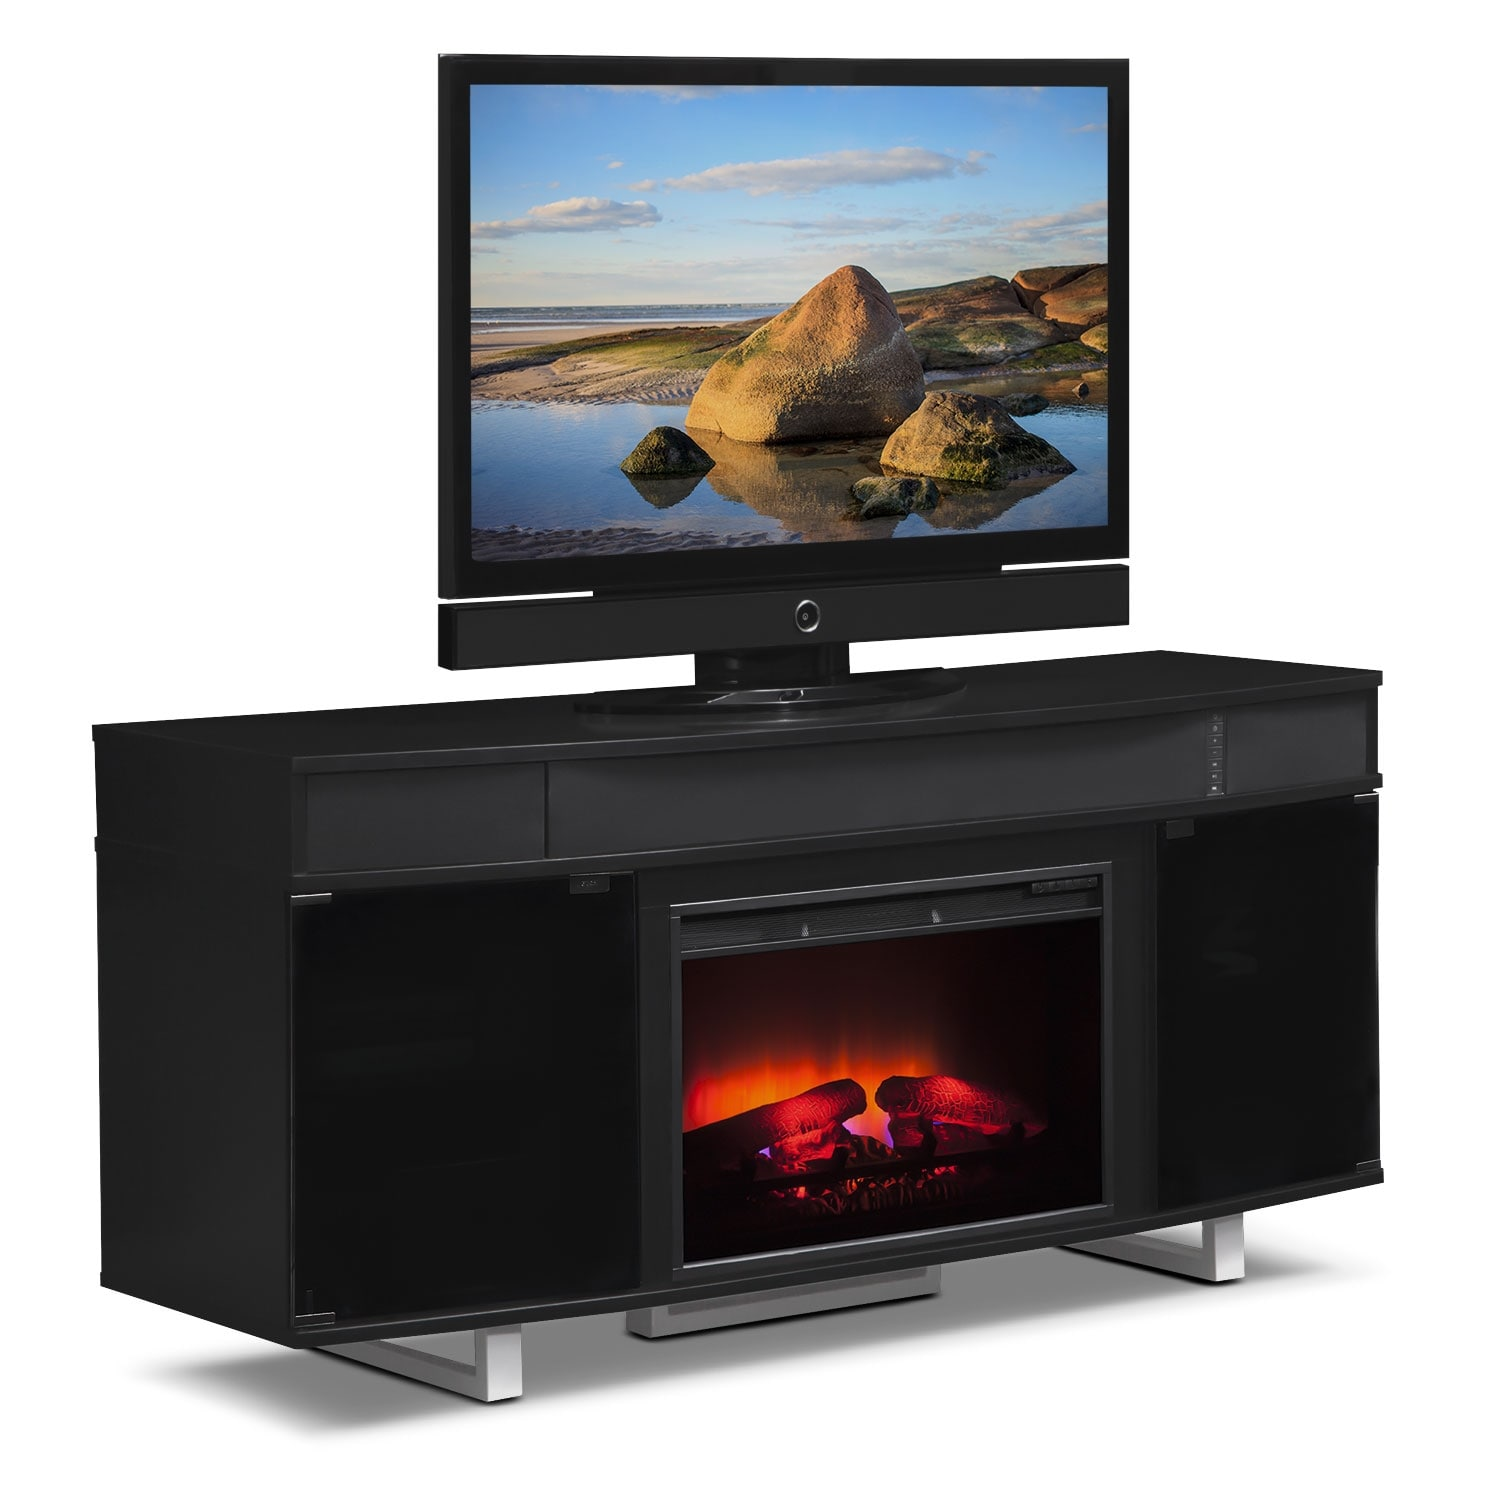 pacer 64 traditional fireplace tv stand with sound bar